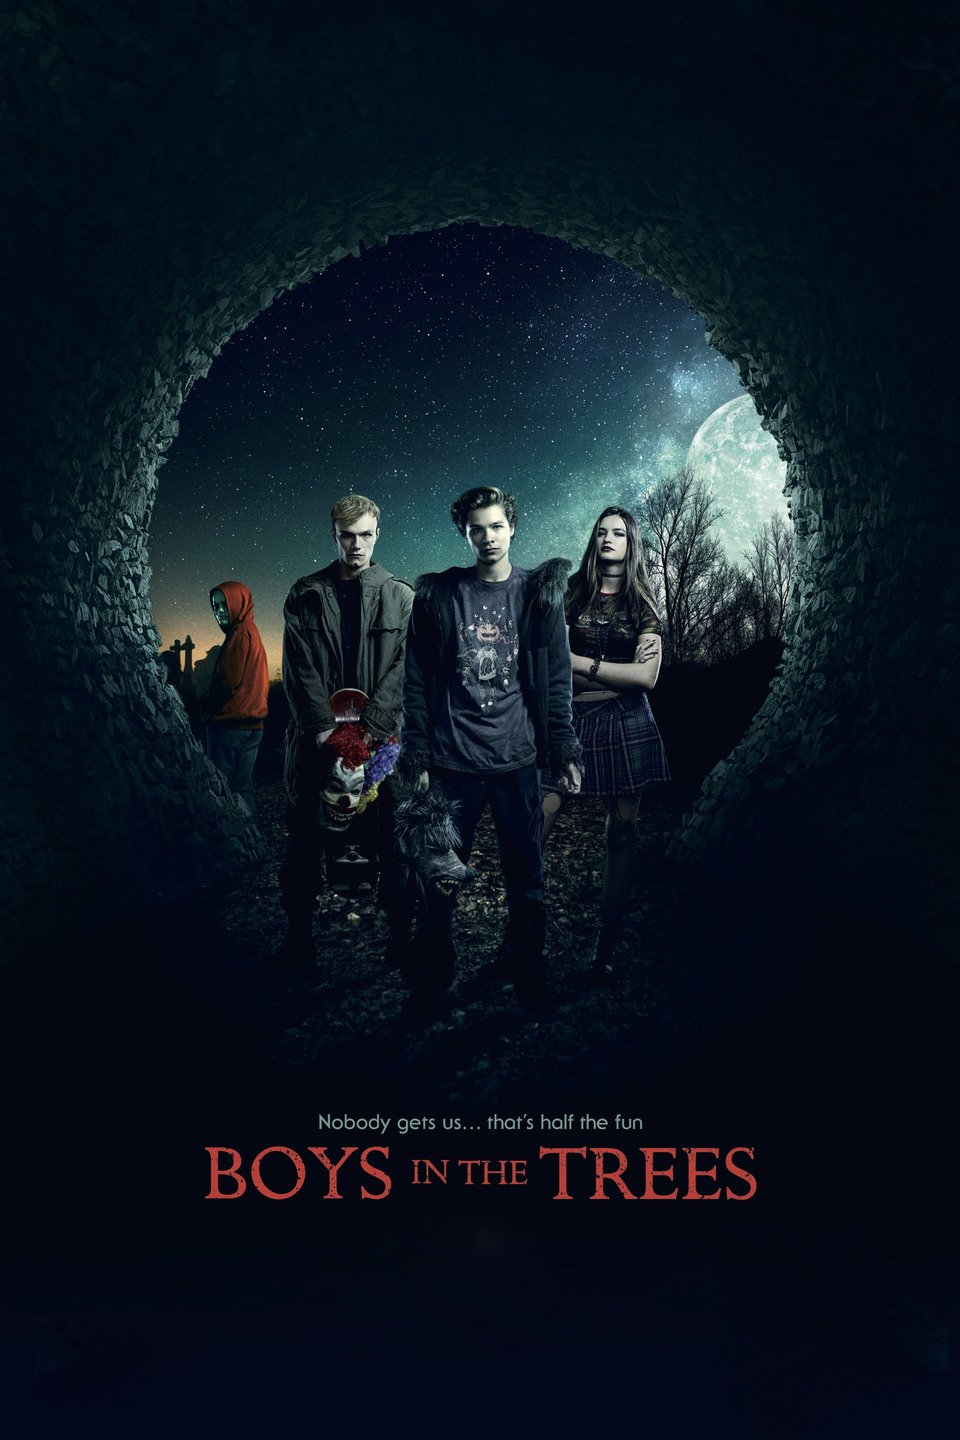 Boys in the Trees-Boys in the Trees